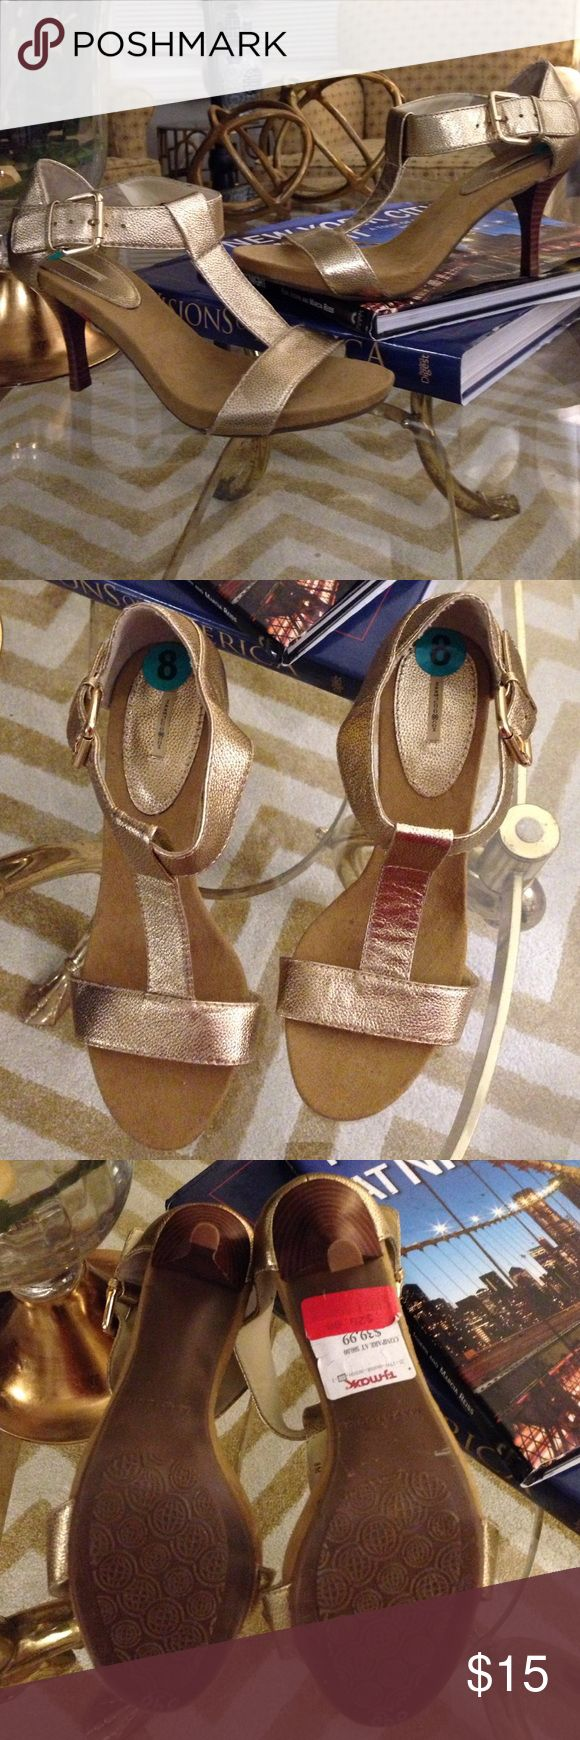 Brand New! Never been worn gold sandal heels Brand new with the tags on still! The heel is not high so they would be perfect to dress up or wear casually! Max Studio Shoes Sandals